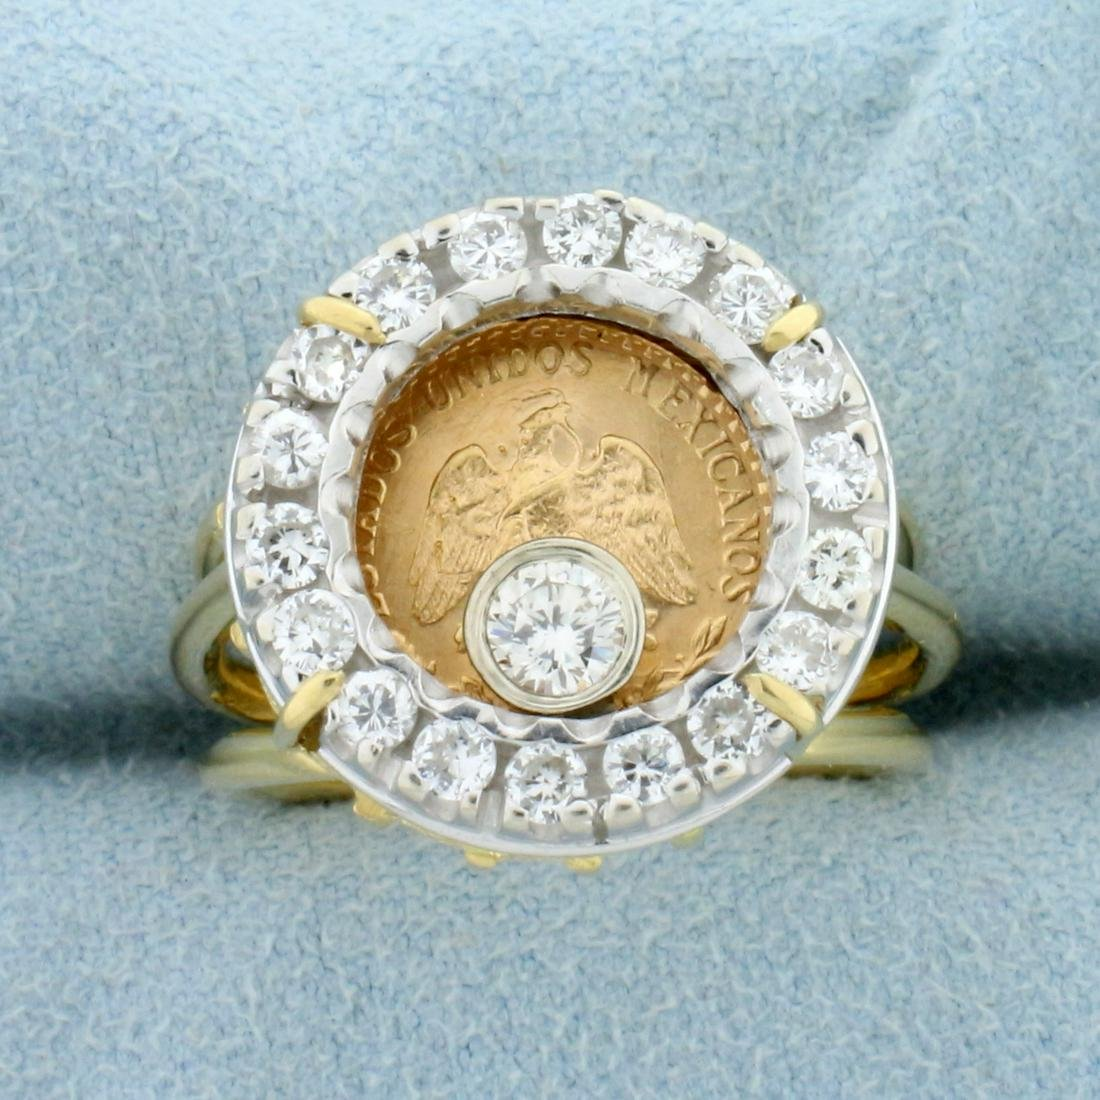 2.5 Peso Mexican Gold Coin Diamond Ring in 18K Yellow